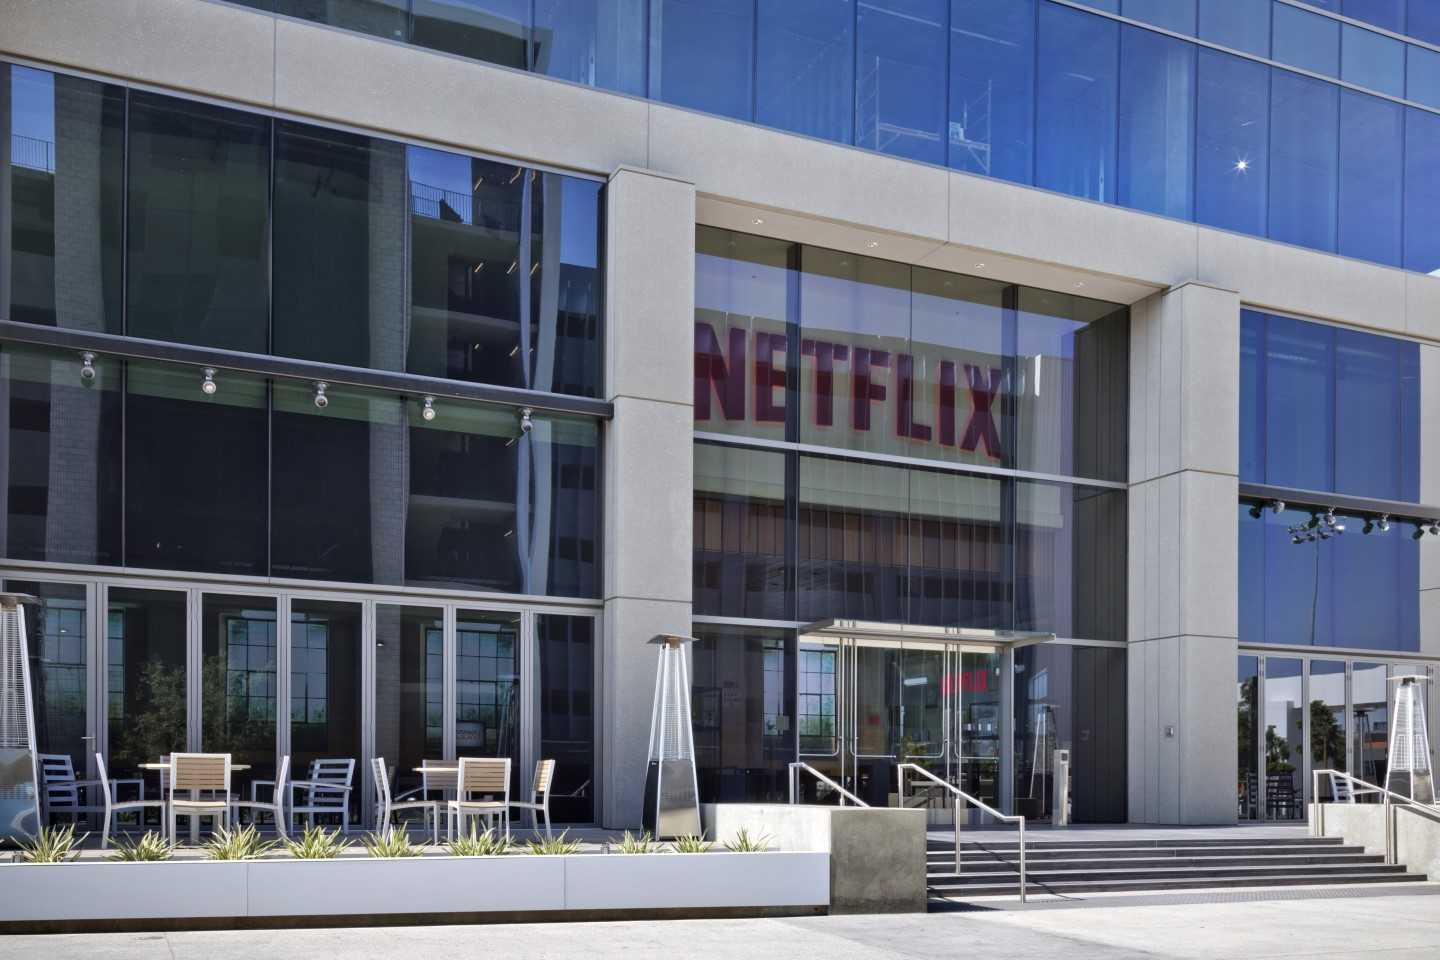 Netflix Is Sure 'Content' Doesn't Affect the World, Unless it Does